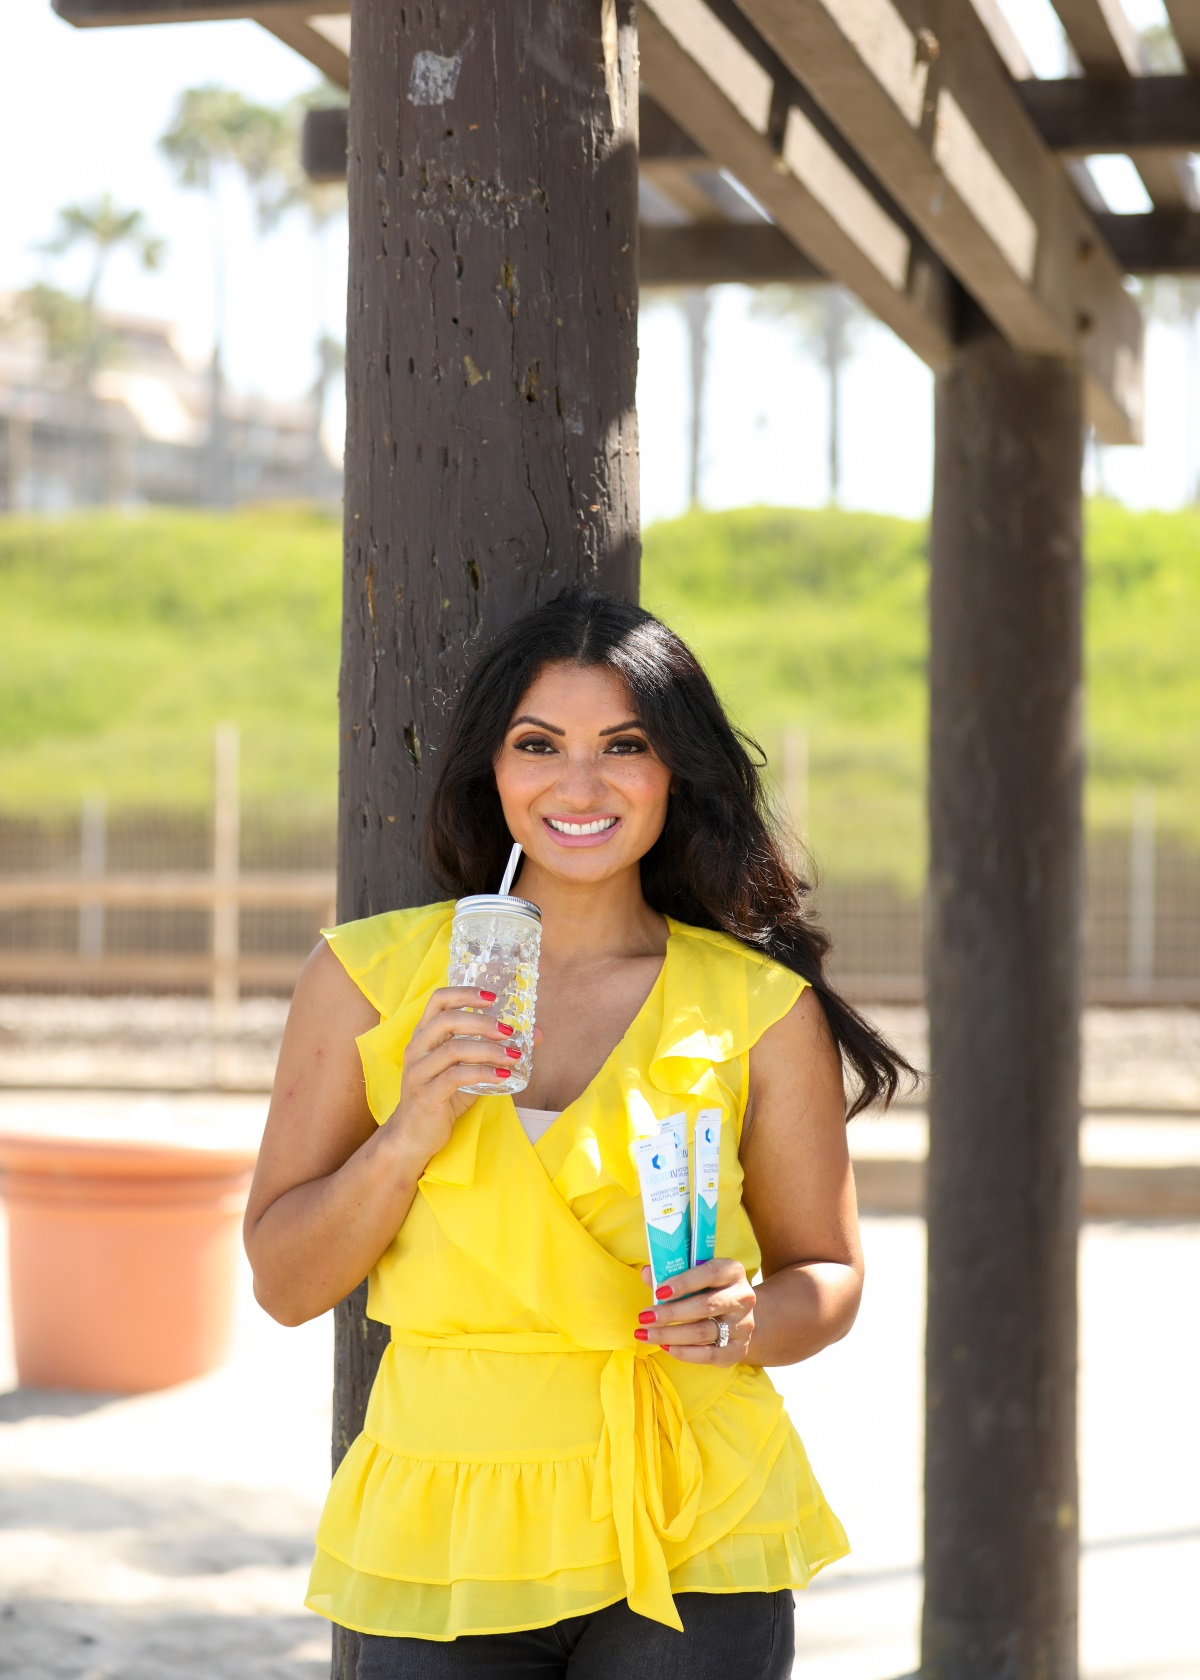 5 Benefits to Staying Hydrated | Liquid I.V. electrolyte drink mix | Orange County Fashion and Lifestyle Blog | Debbie Savage of To Thine Own Style Be True